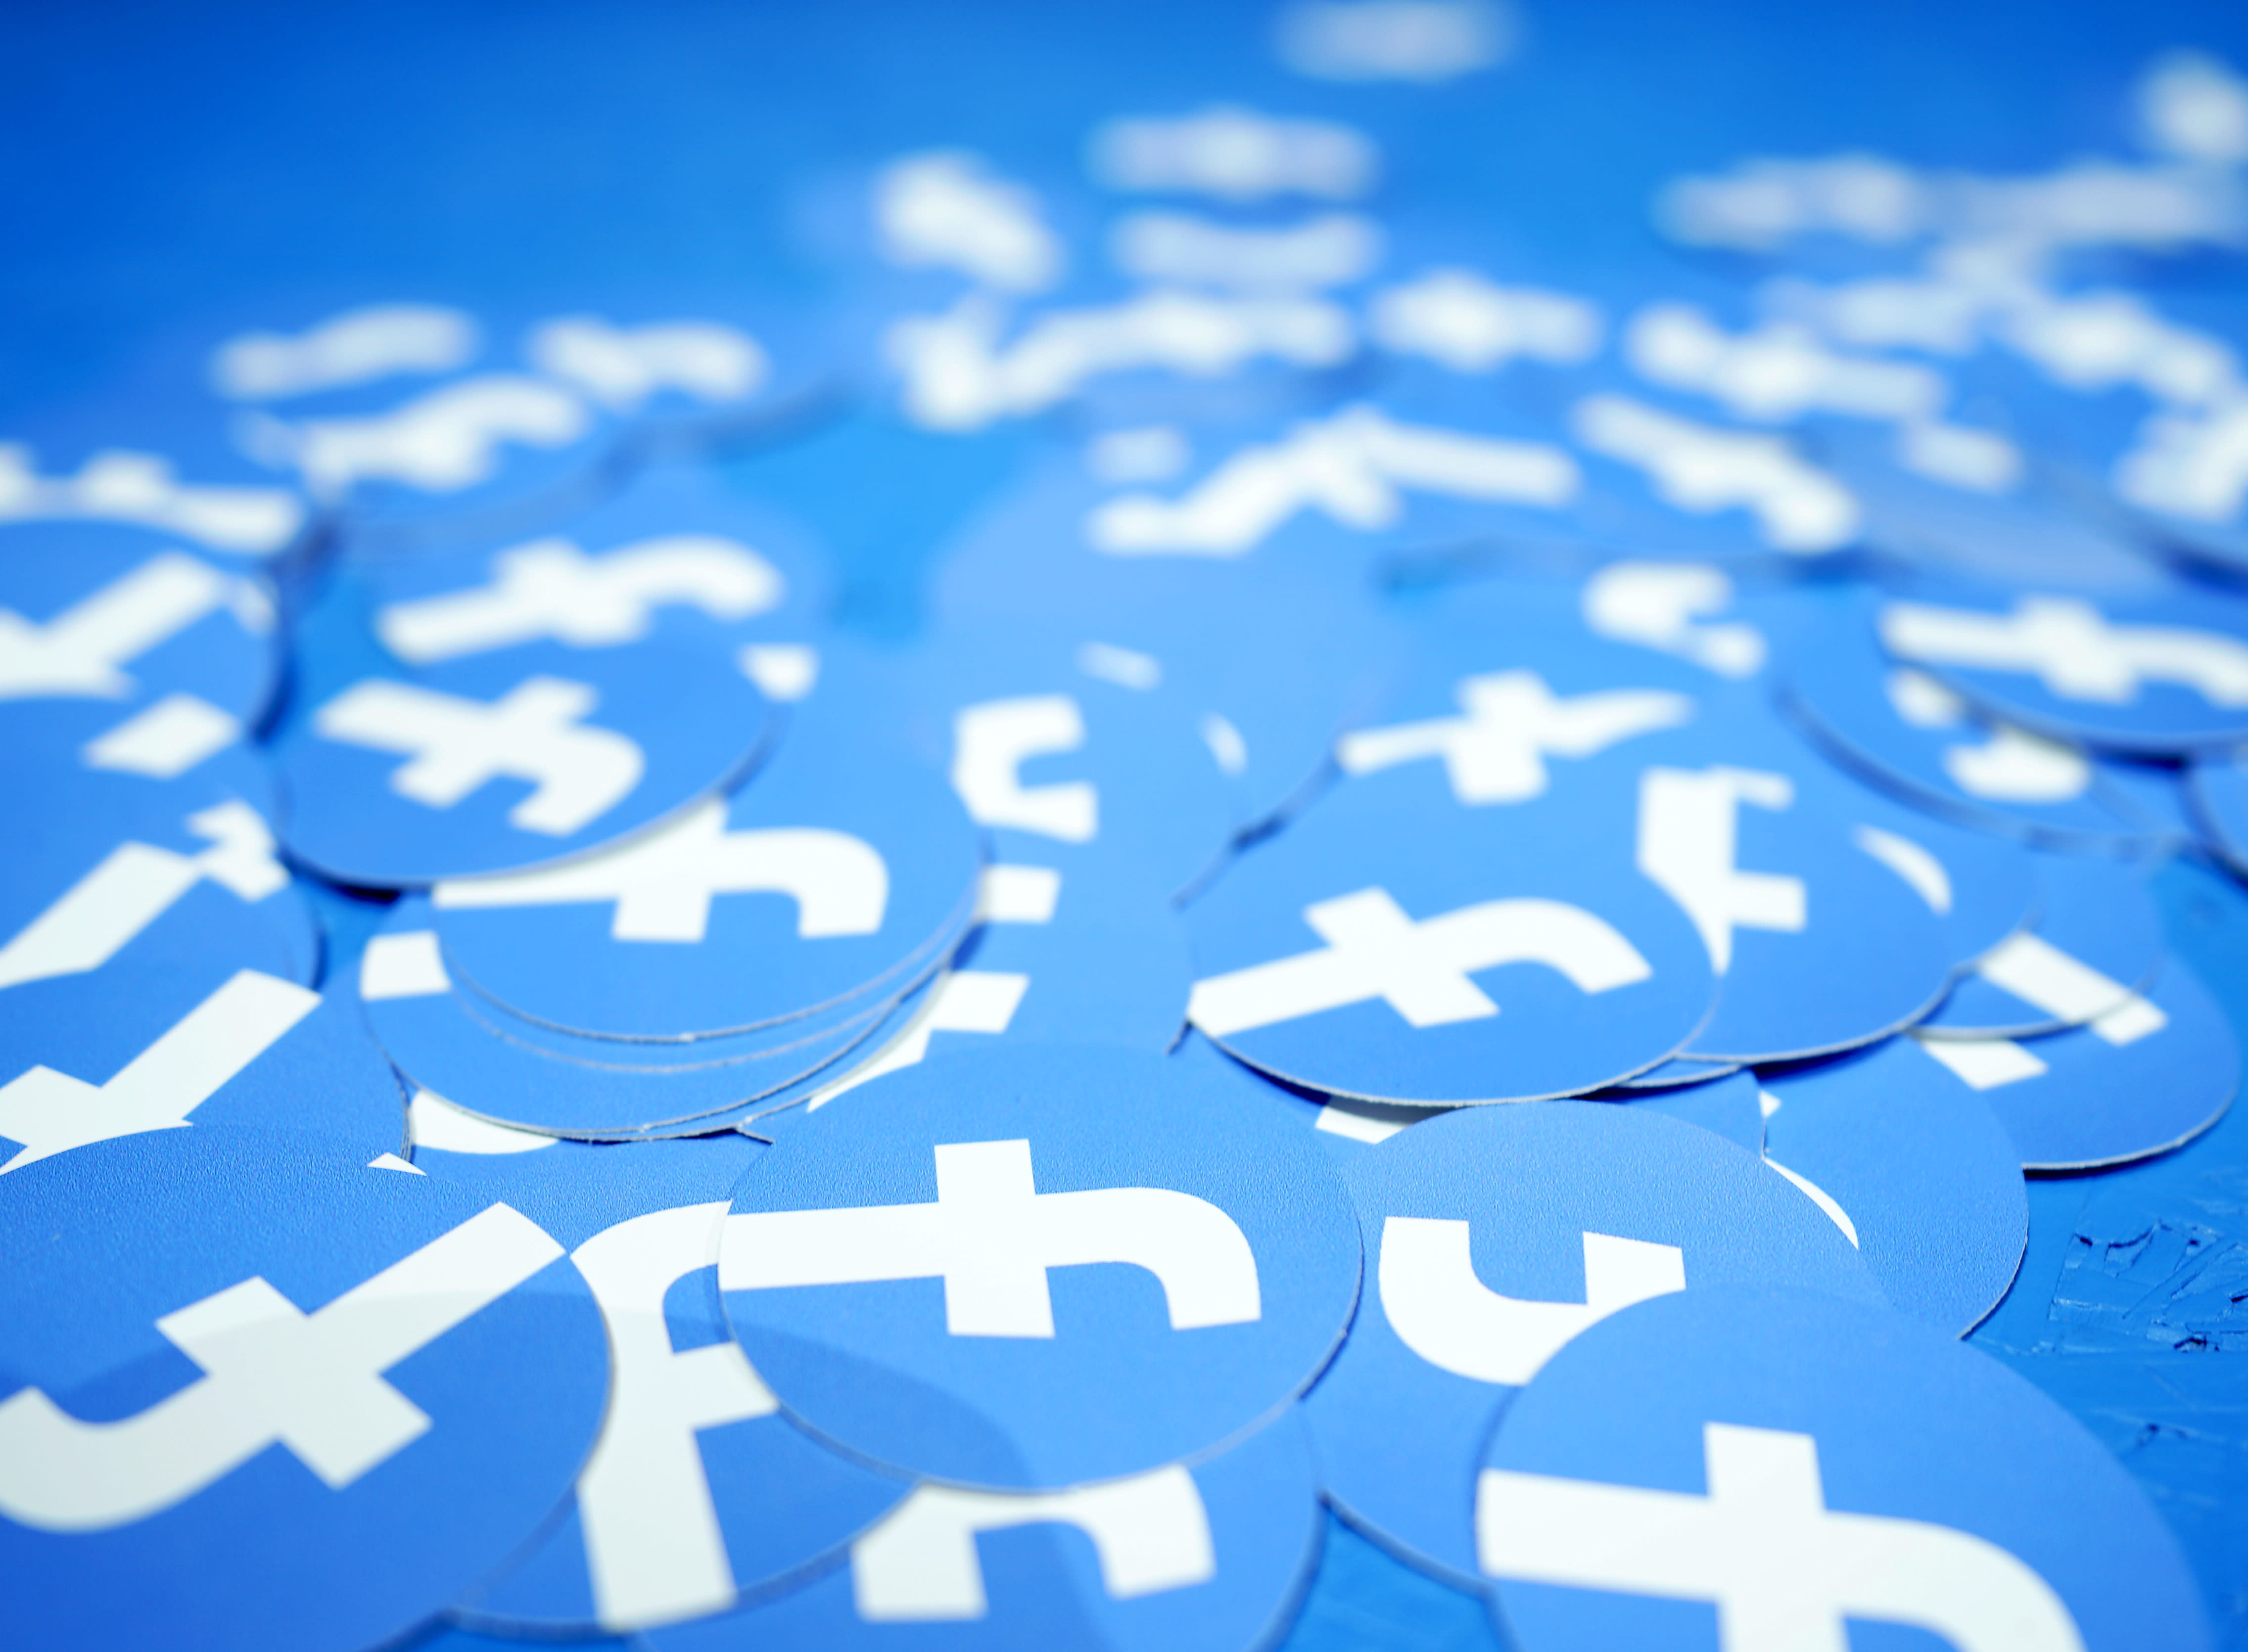 Facebook set to introduce Libra cryptocurrency